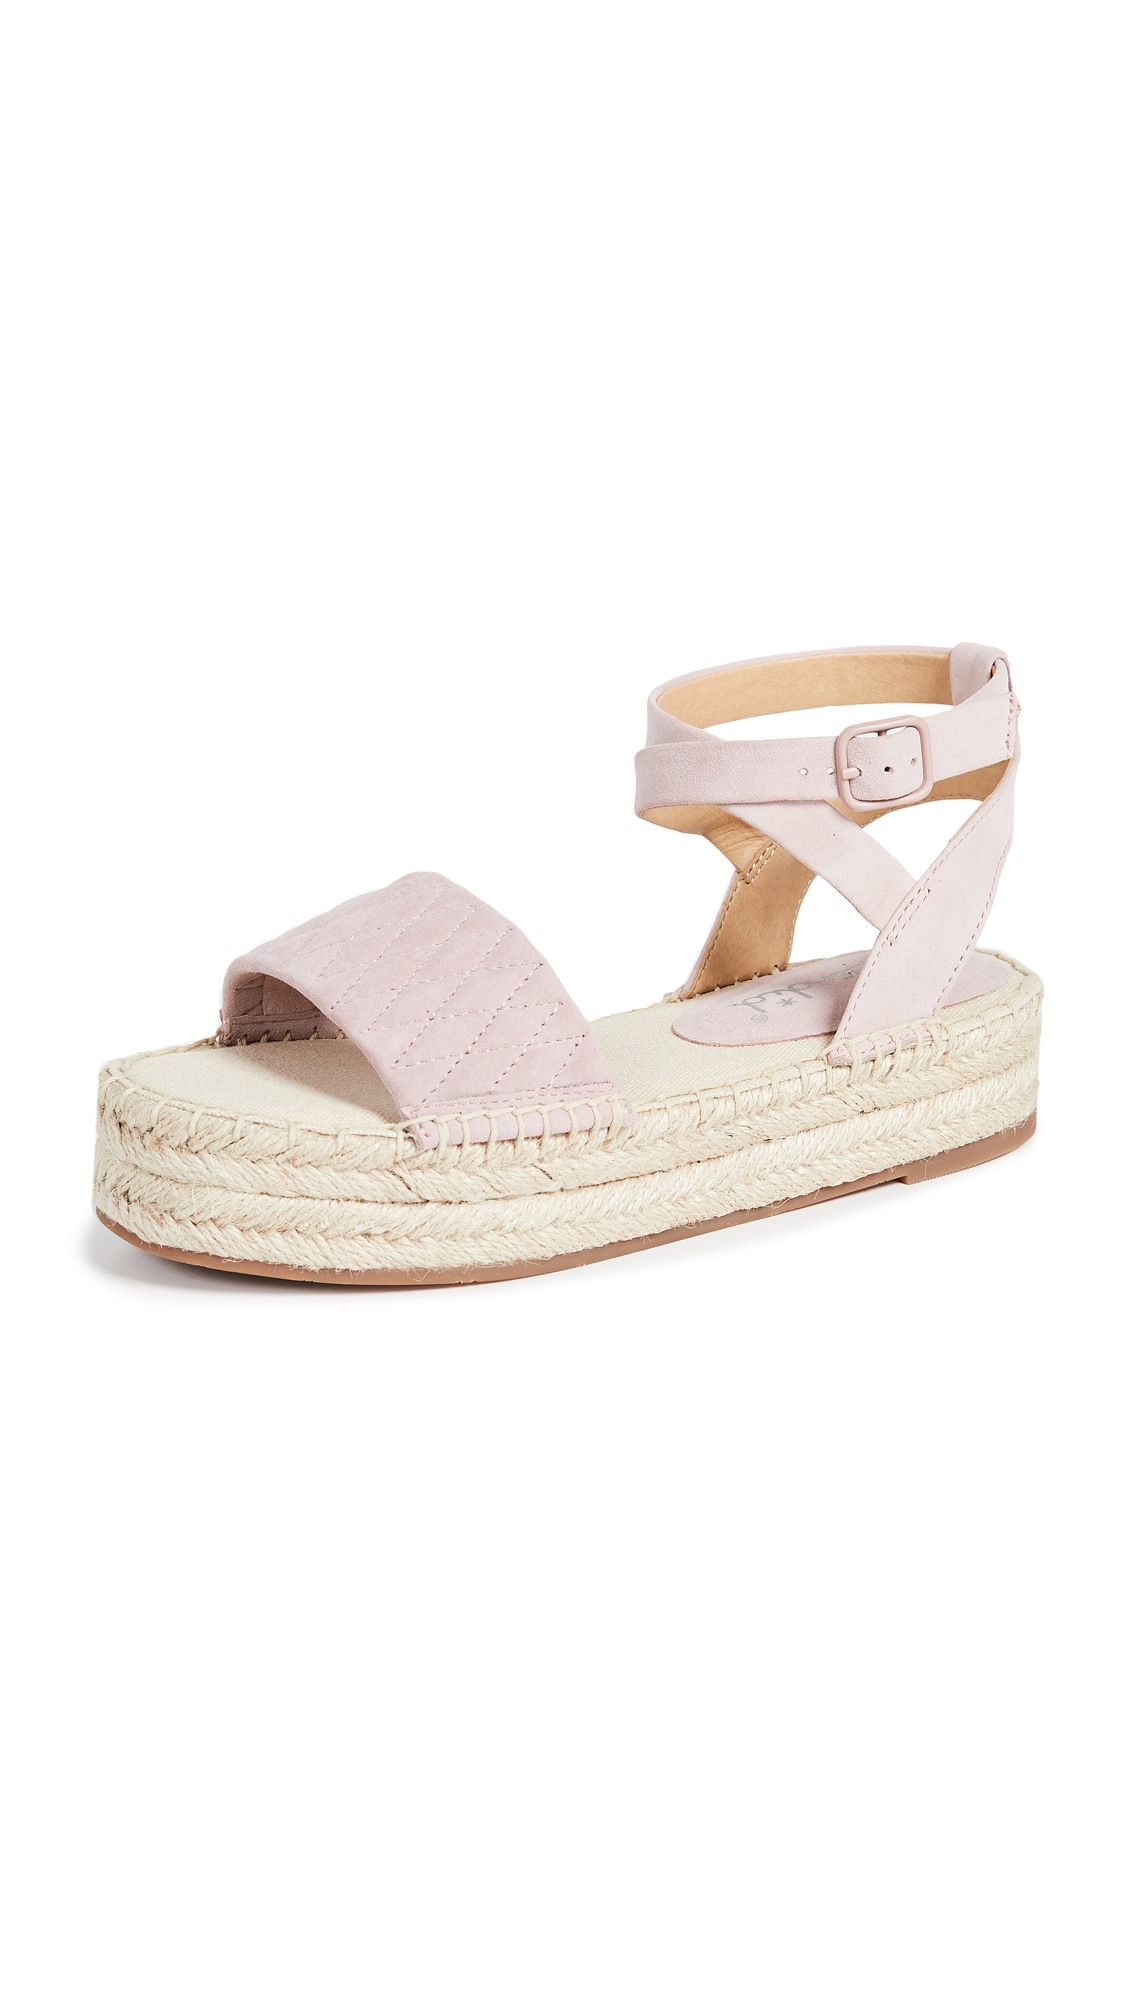 Splendid Seward Strappy Espadrilles - Rose